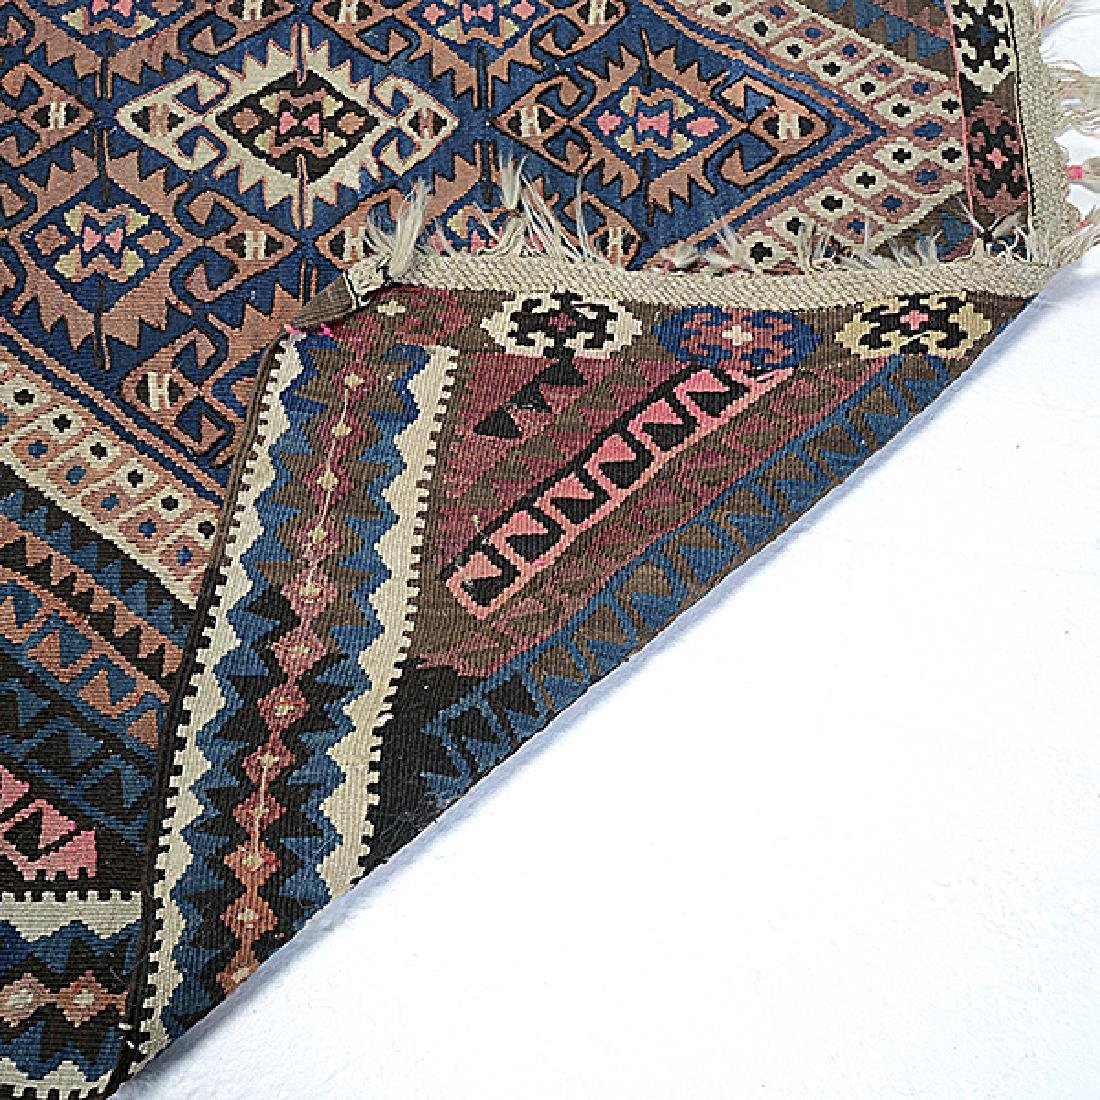 Qasqai Kilim Carpet: 4 feet 8 inches x 9 feet 11 inches - 4